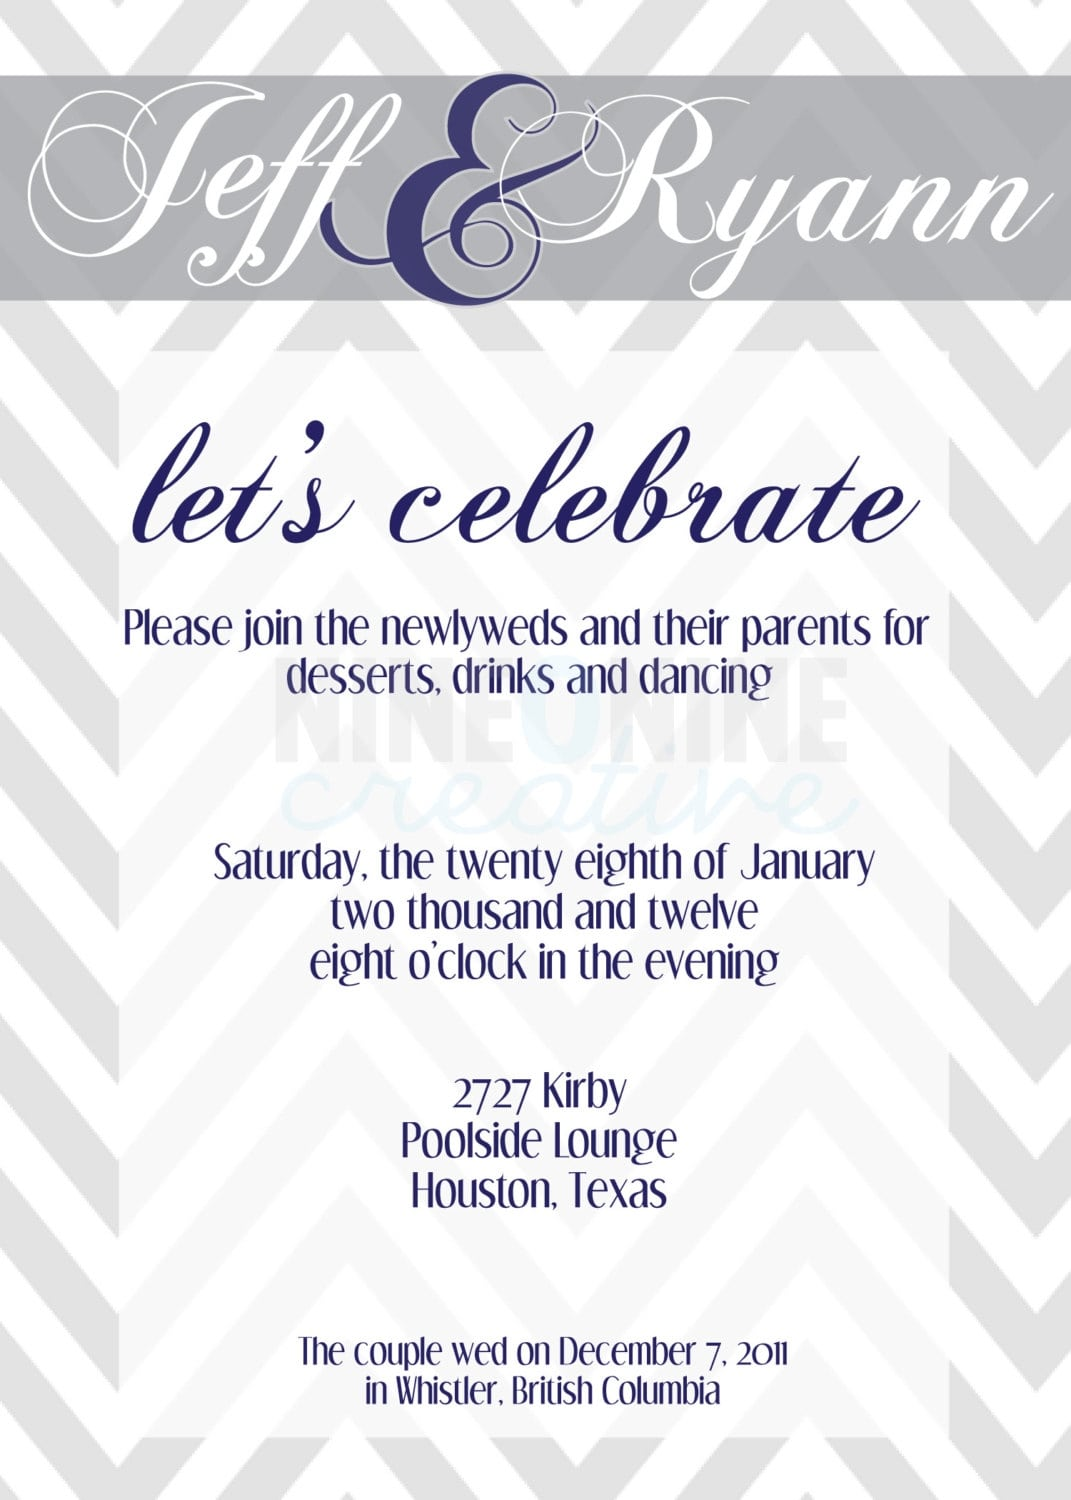 After Wedding Party Invitations Designing Wedding Invitations Gift